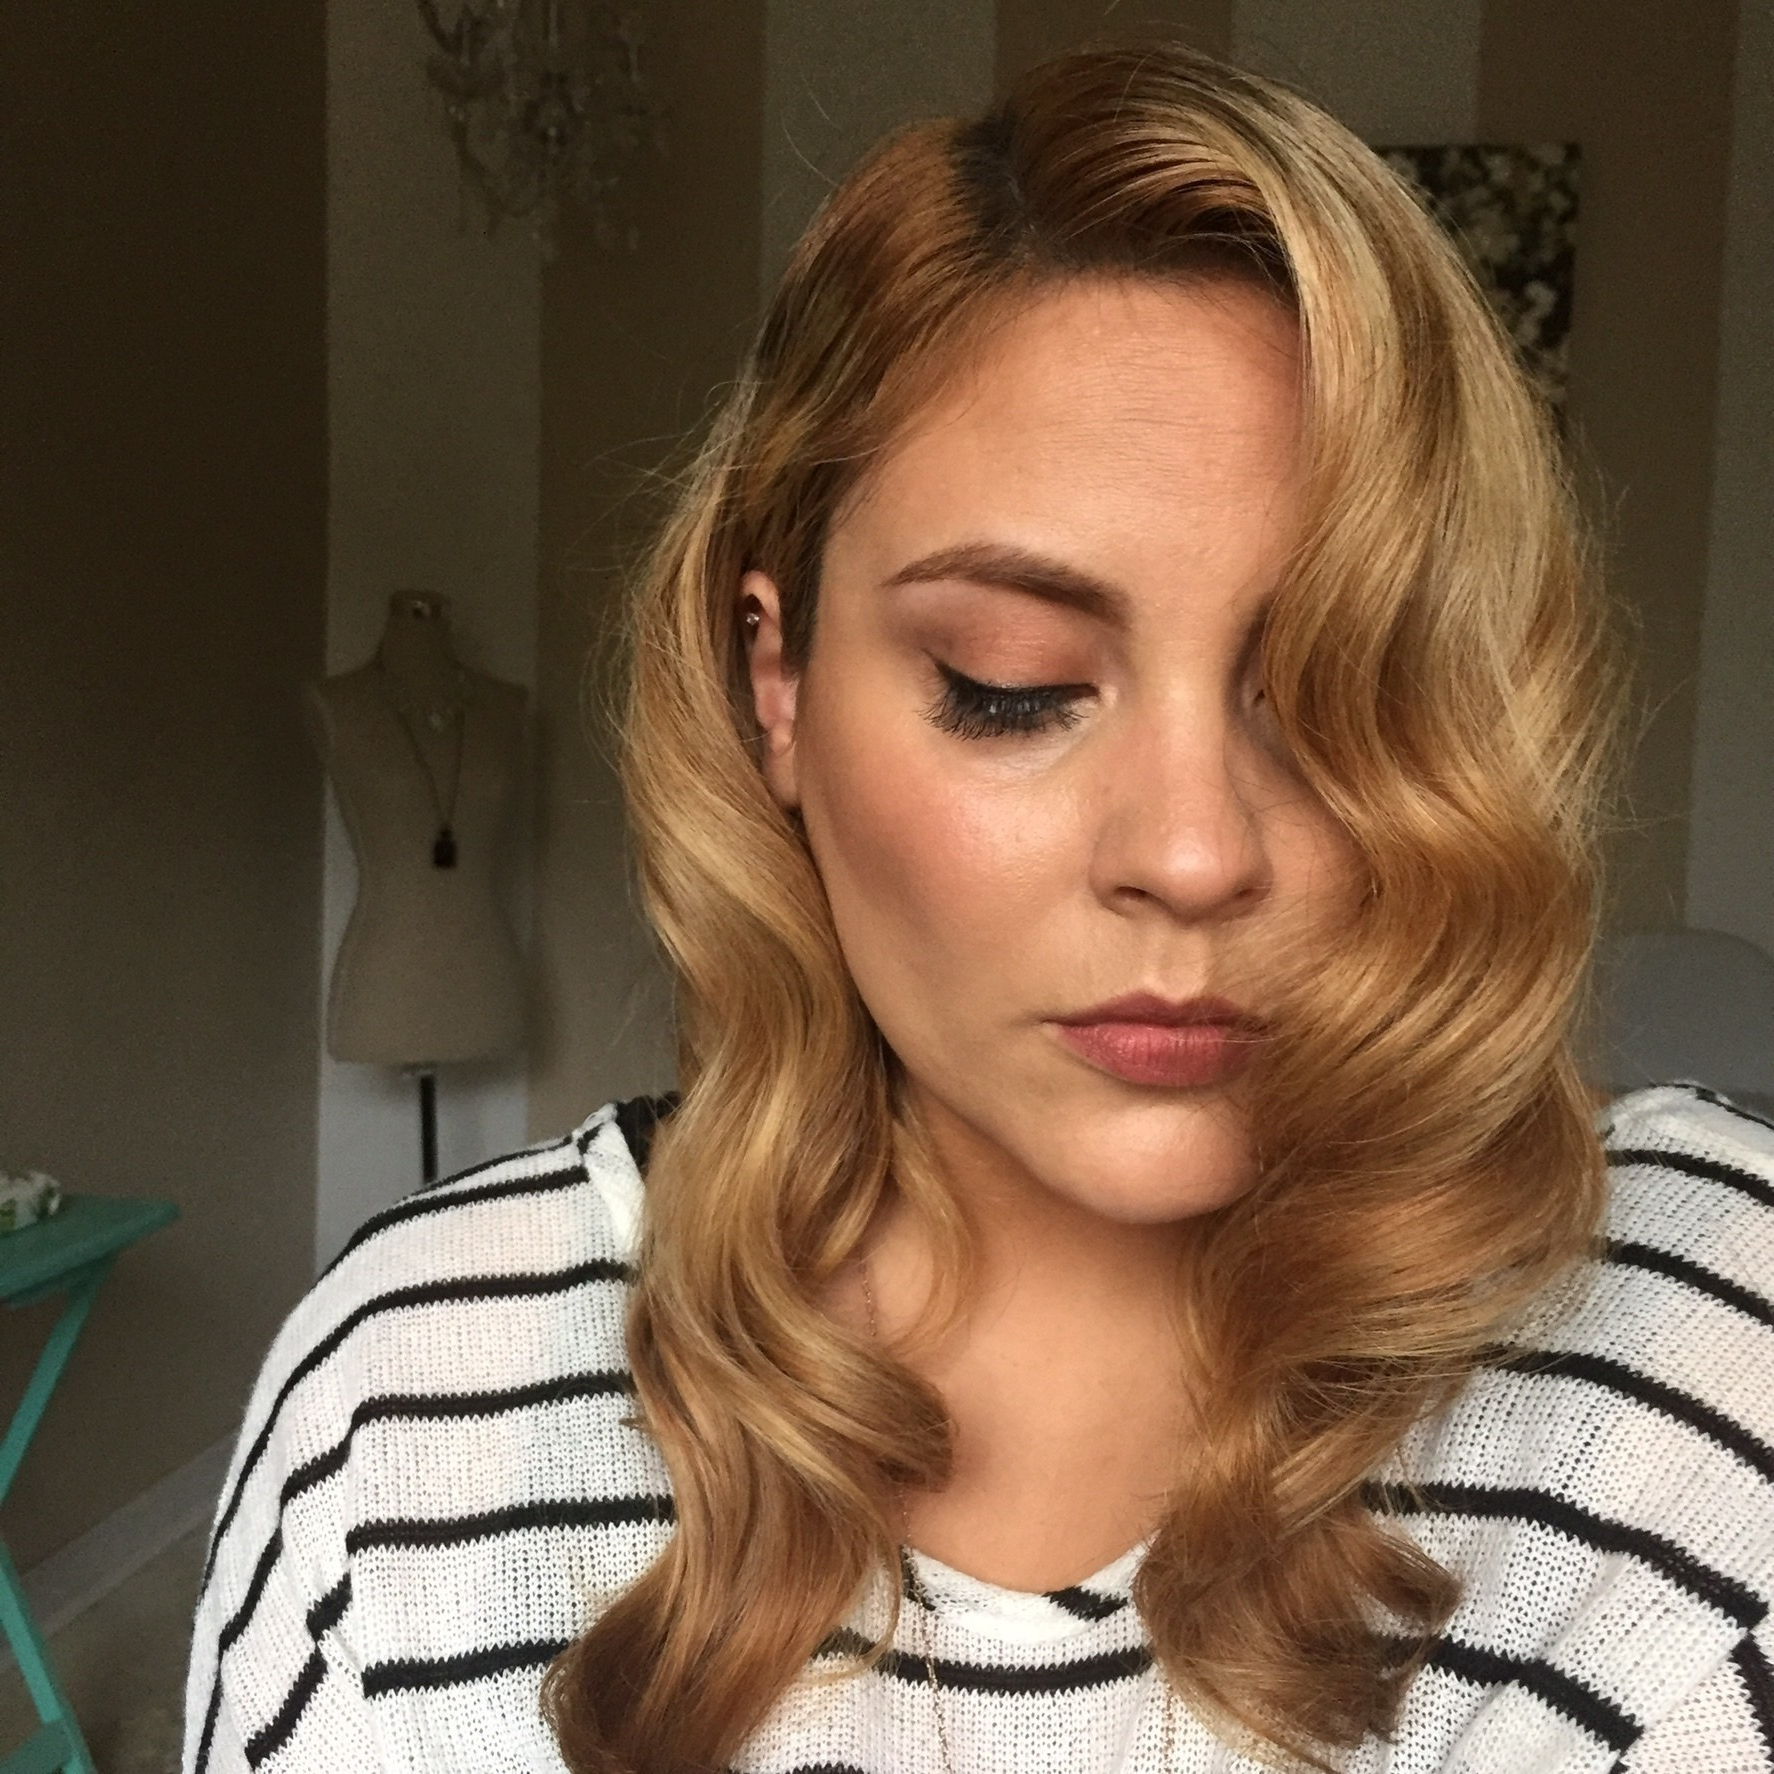 Retro Waves · How To Style A Curly Hairstyle / Wavy In Recent Retro Curls Hairstyles (View 17 of 20)